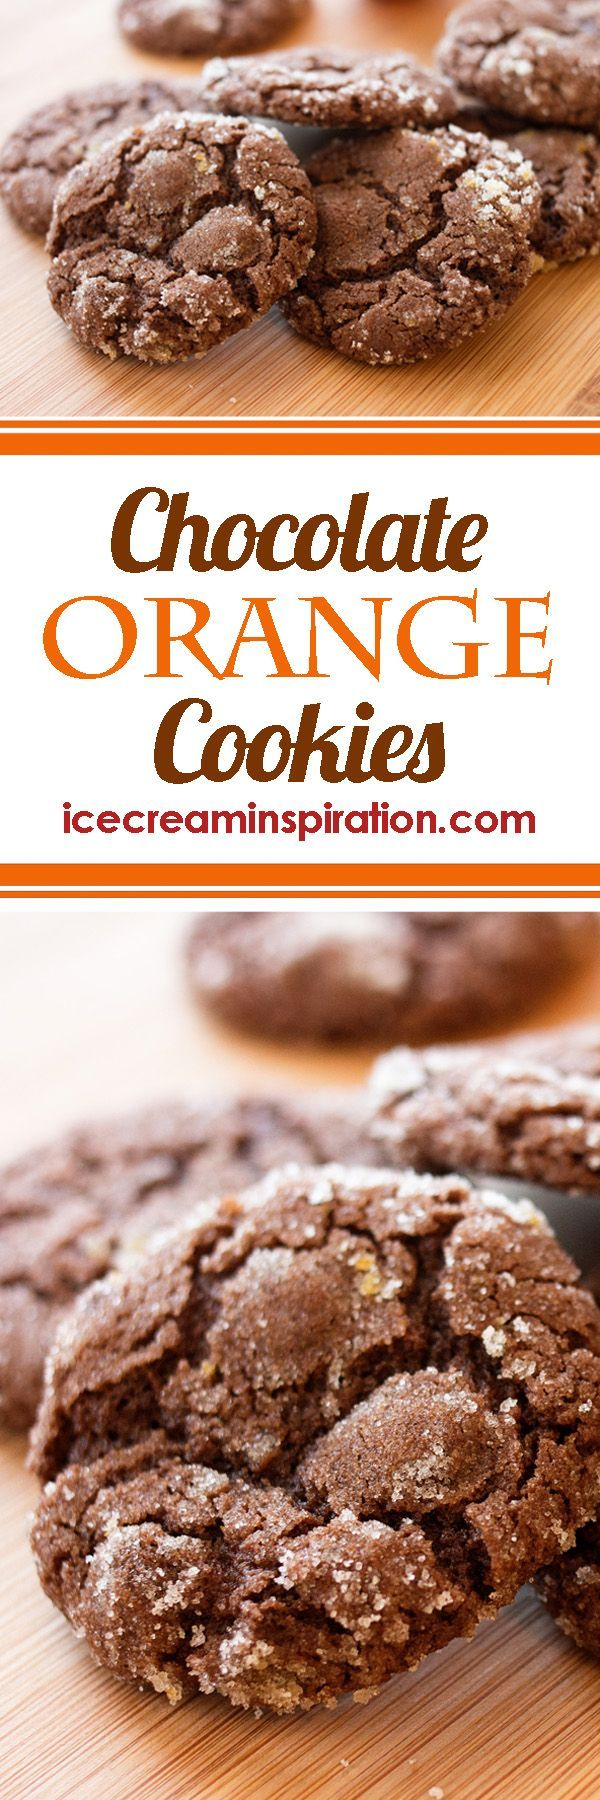 These Chocolate Orange Cookies are the perfect Christmas cookie. The orange peel mixes so well with the flavor of chocolate. Add these to your list of must-make Christmas cookies!